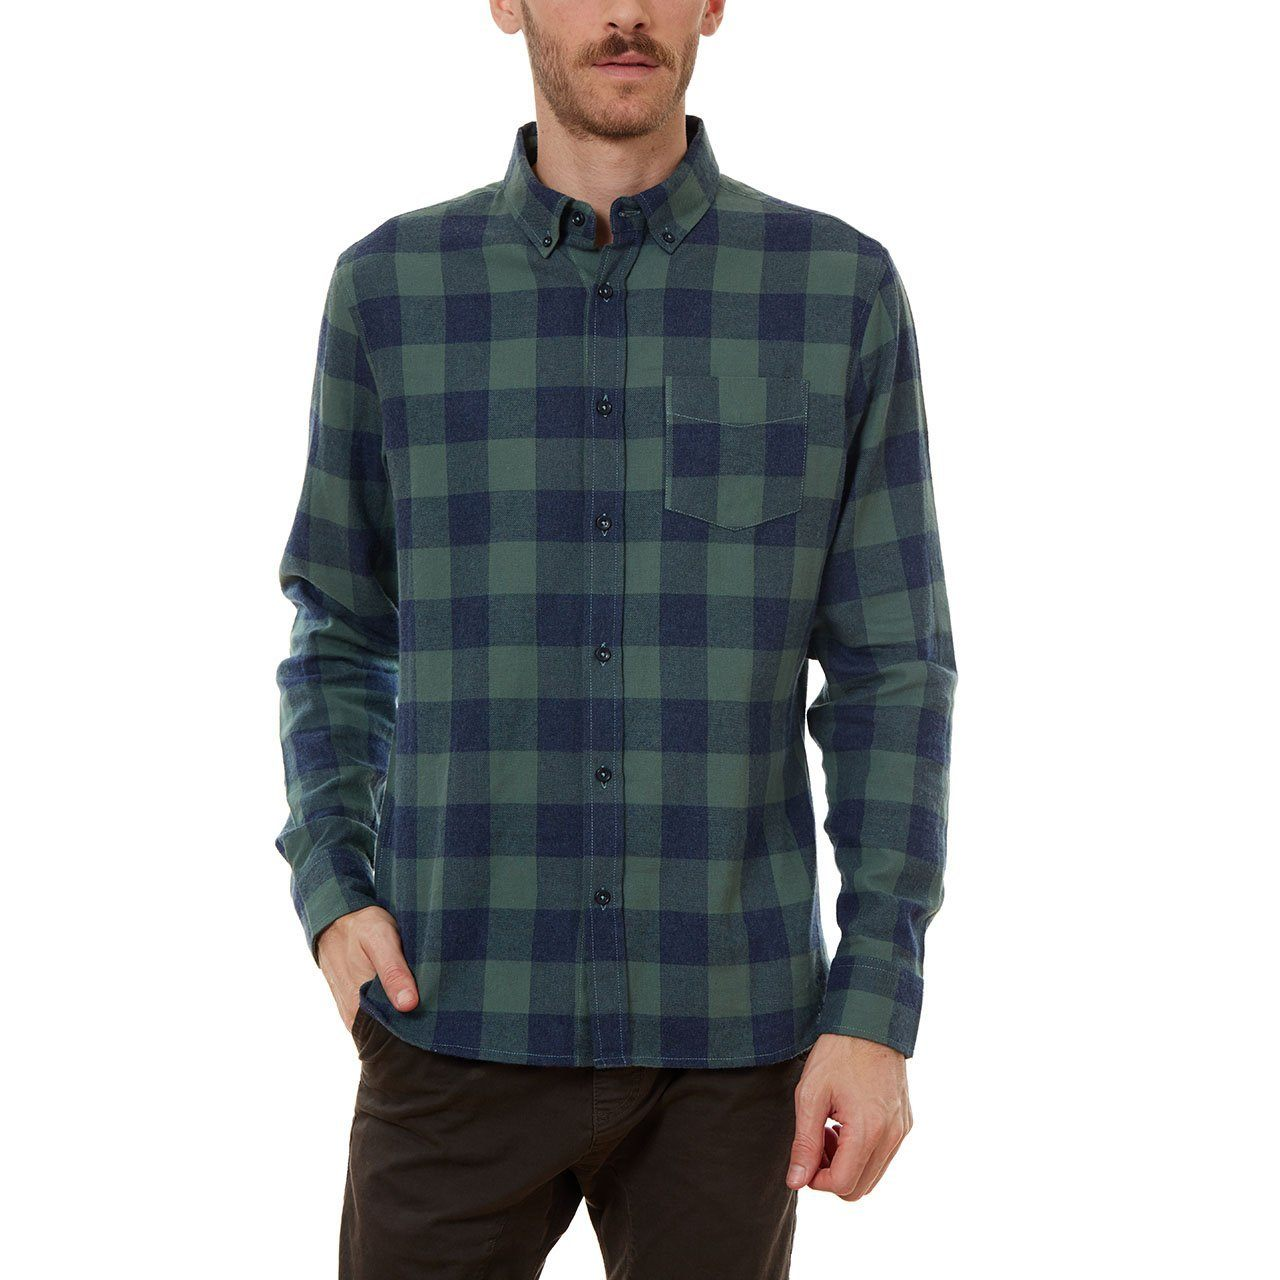 Long Sleeve Shirt, Shirt - Roy Shirt